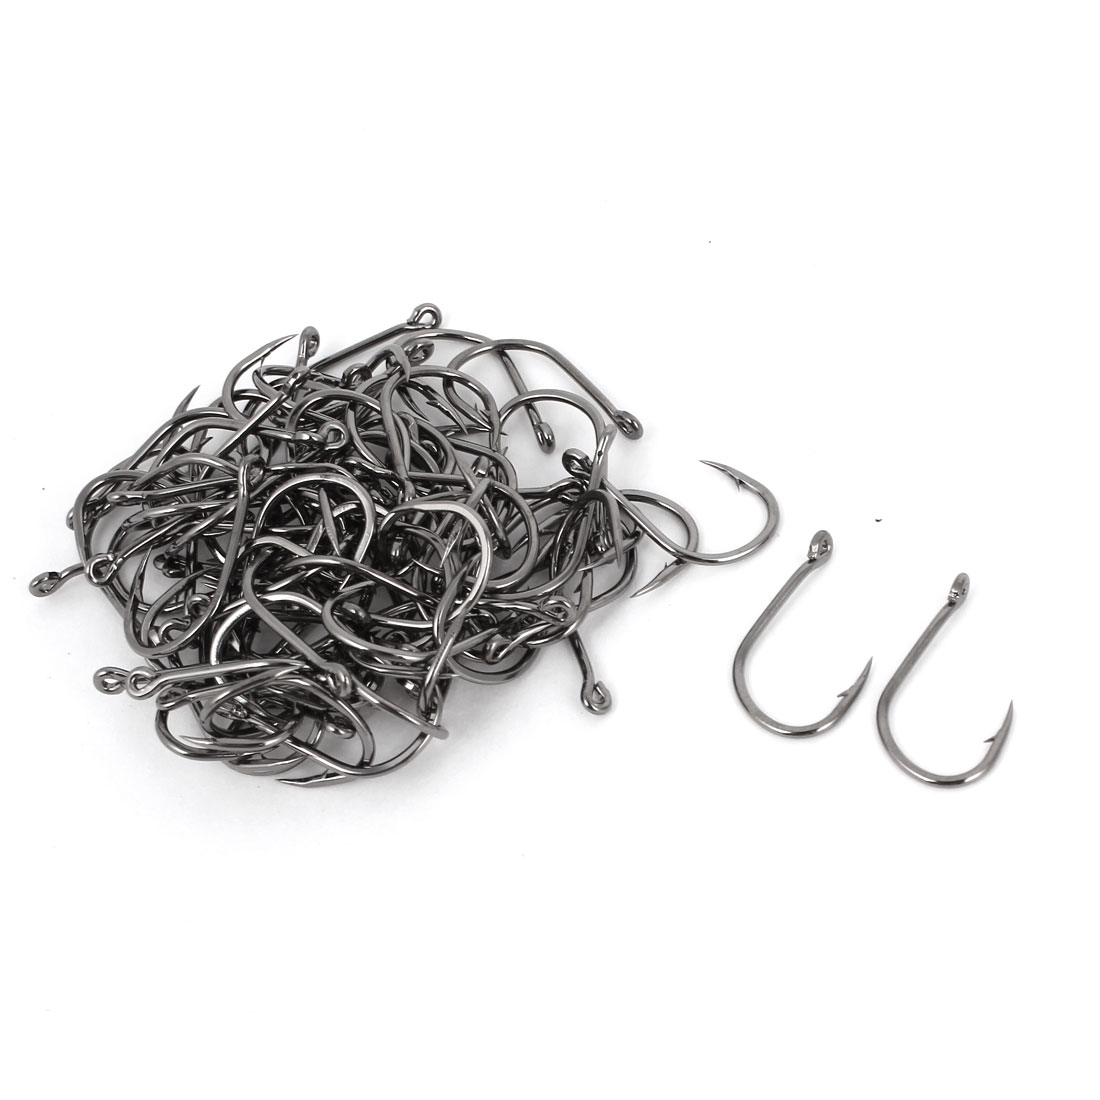 70 Pieces Dark Gray Metal Barb Eye Hole End Fishhook Fishing Hooks 12#